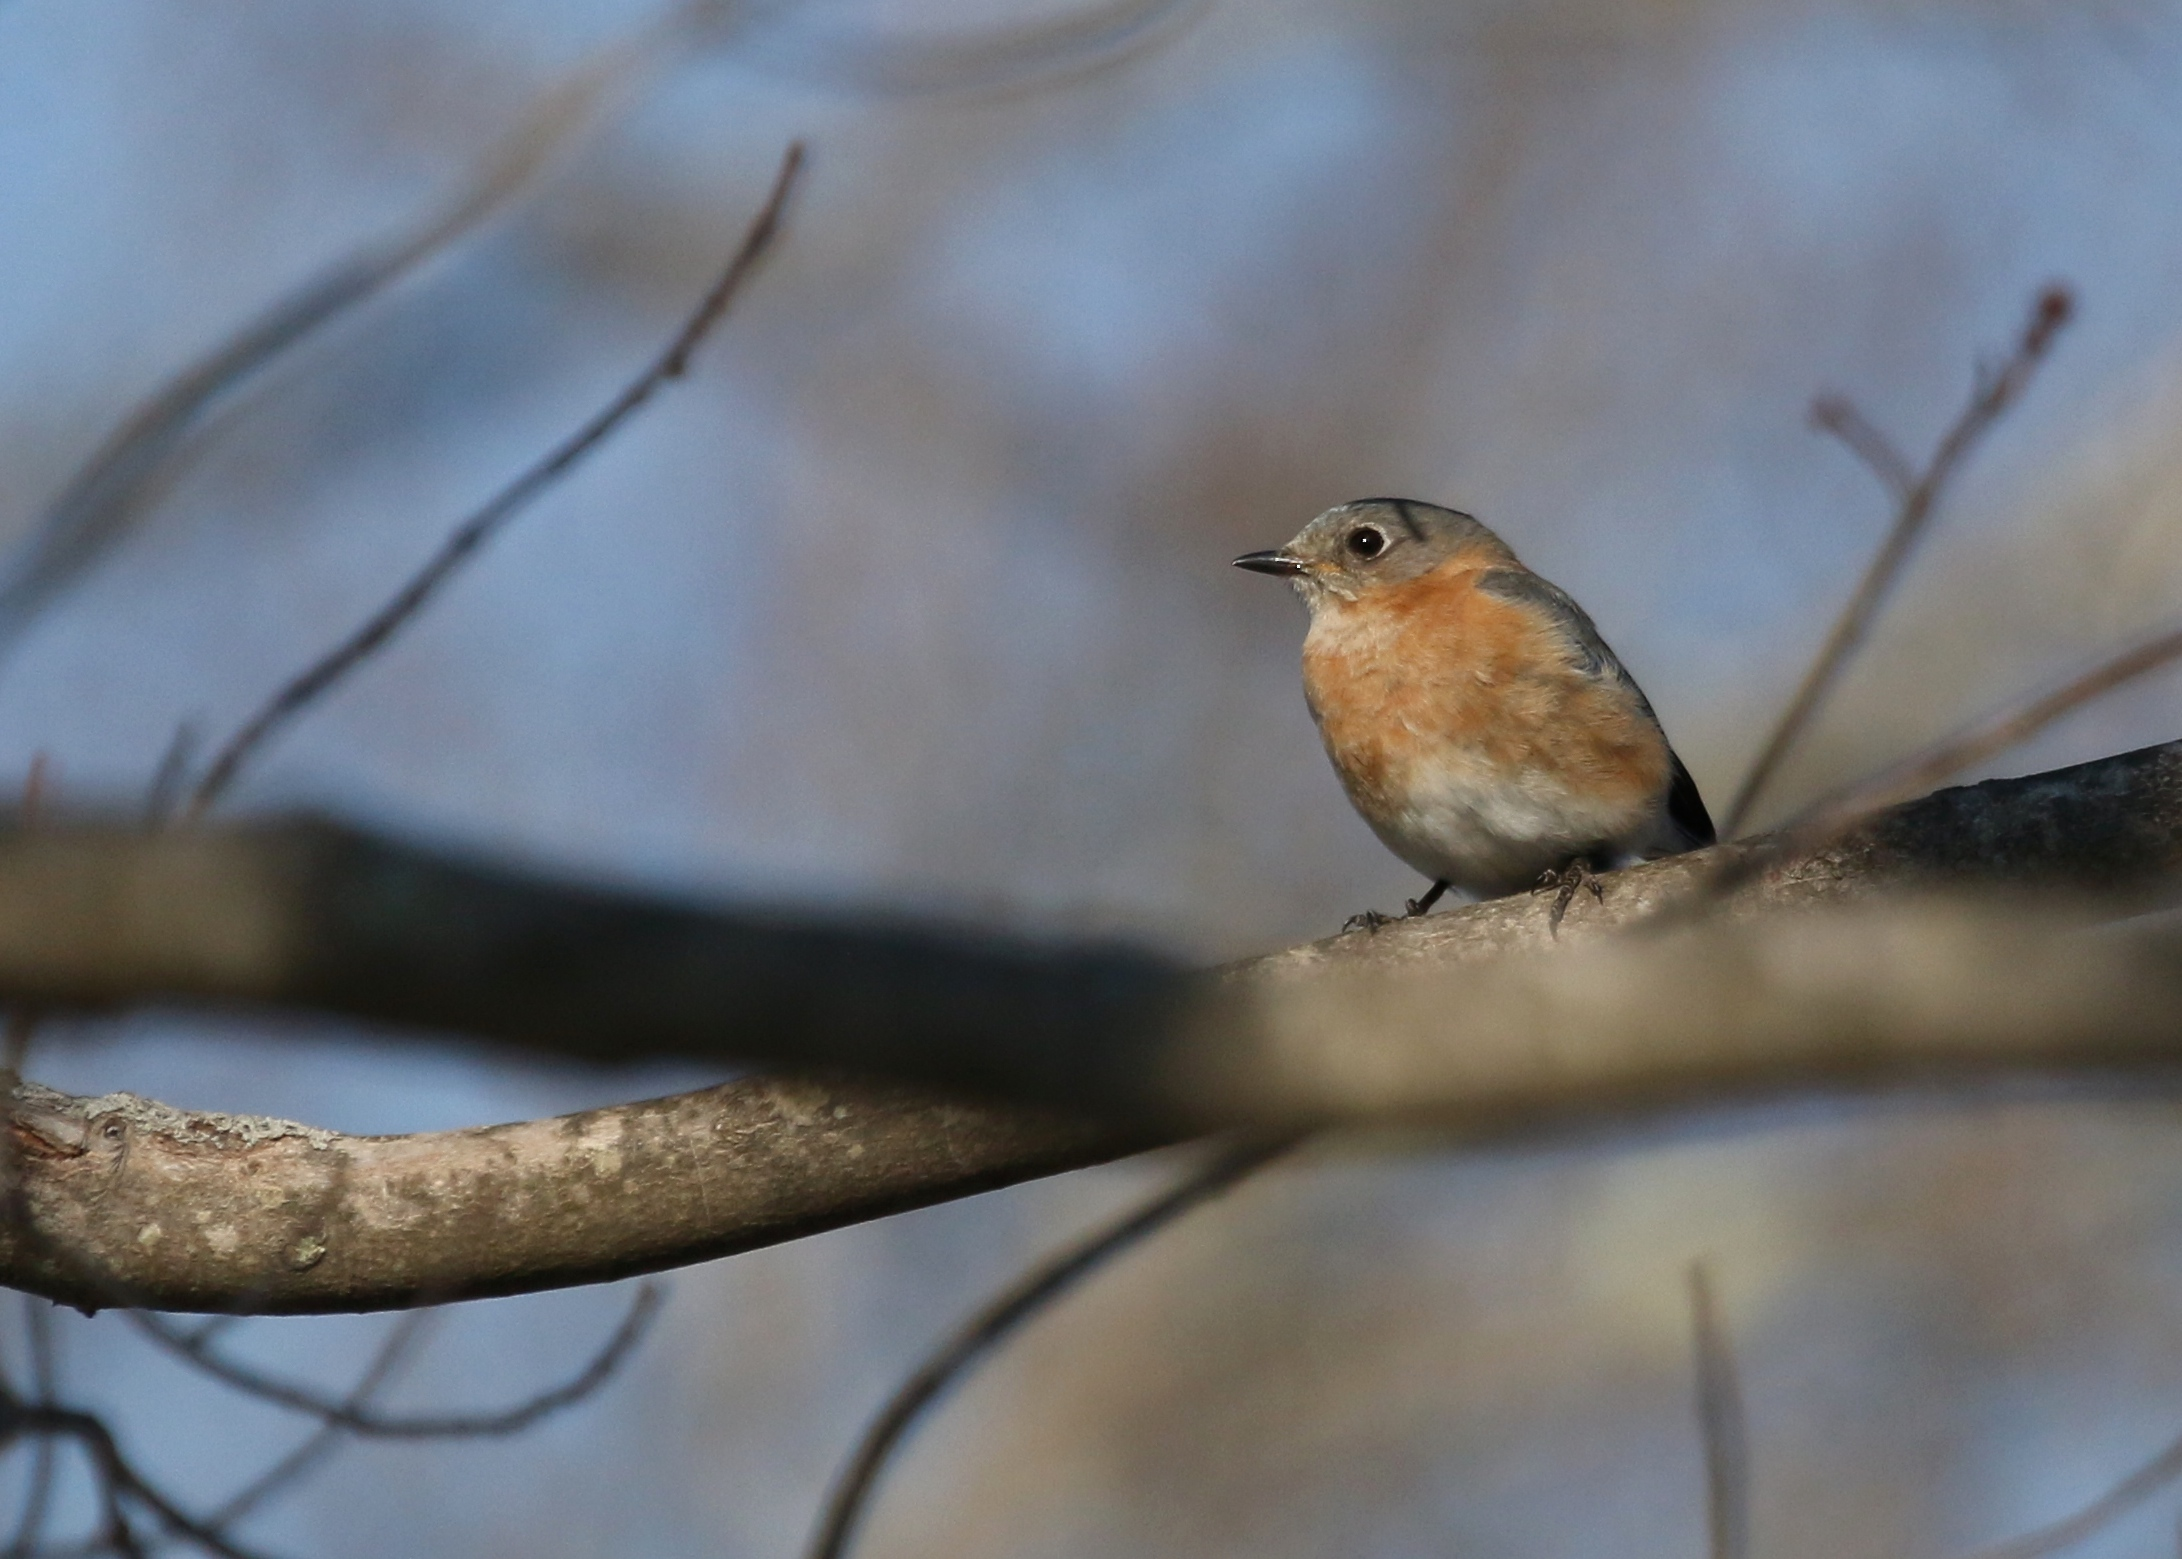 Saturday afternoon I walked some of the trails at the Basha Kill and found this Eastern Bluebird.